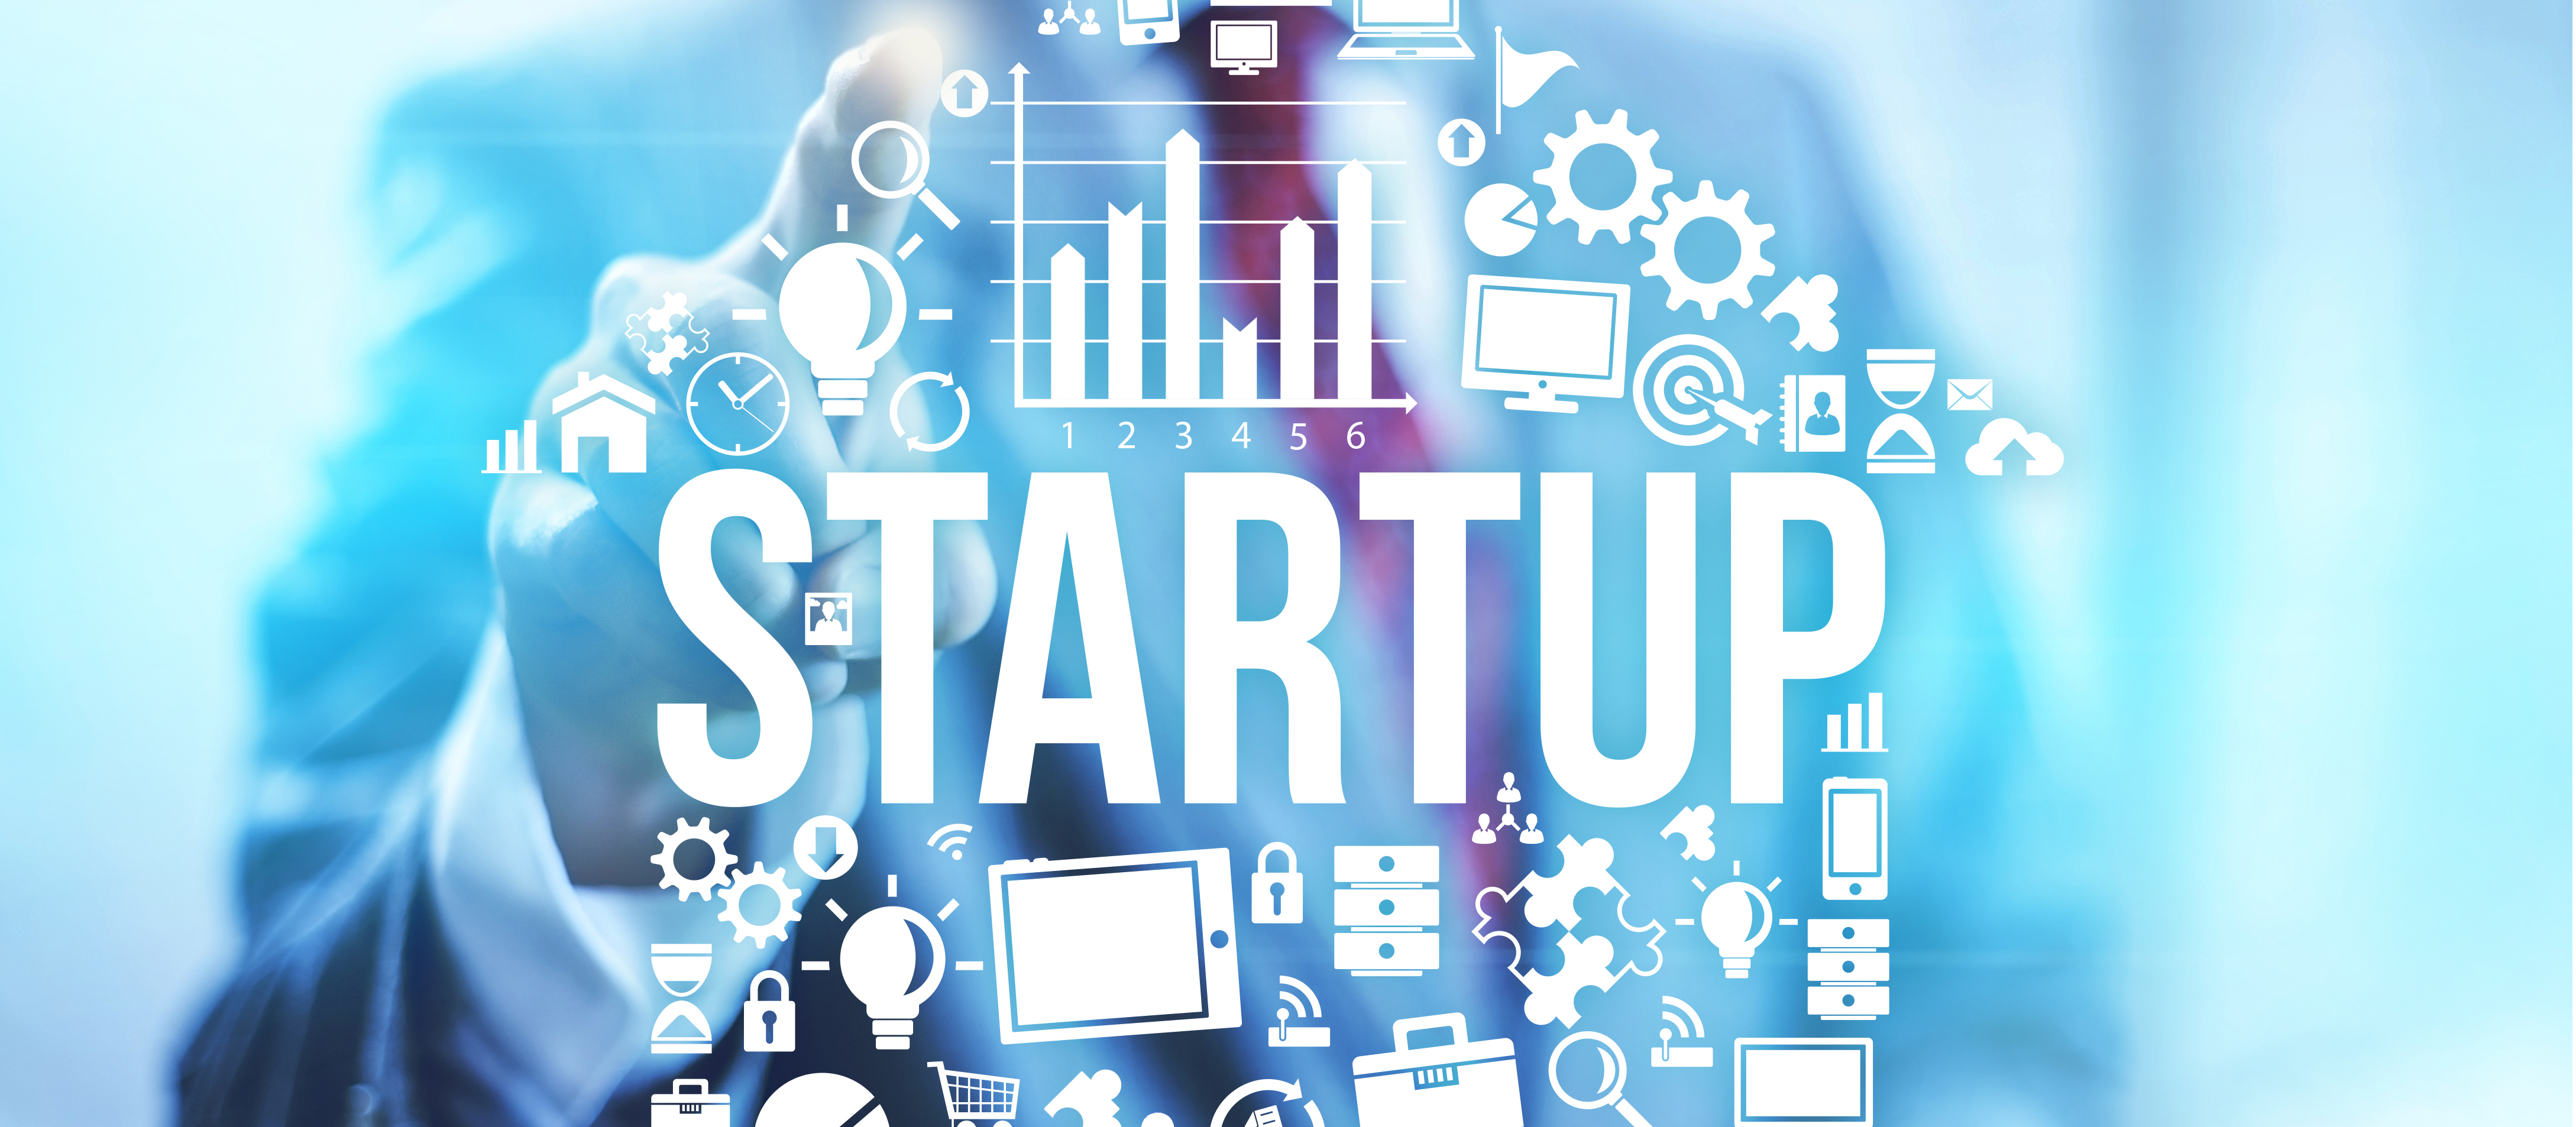 startup-business-concept1-1